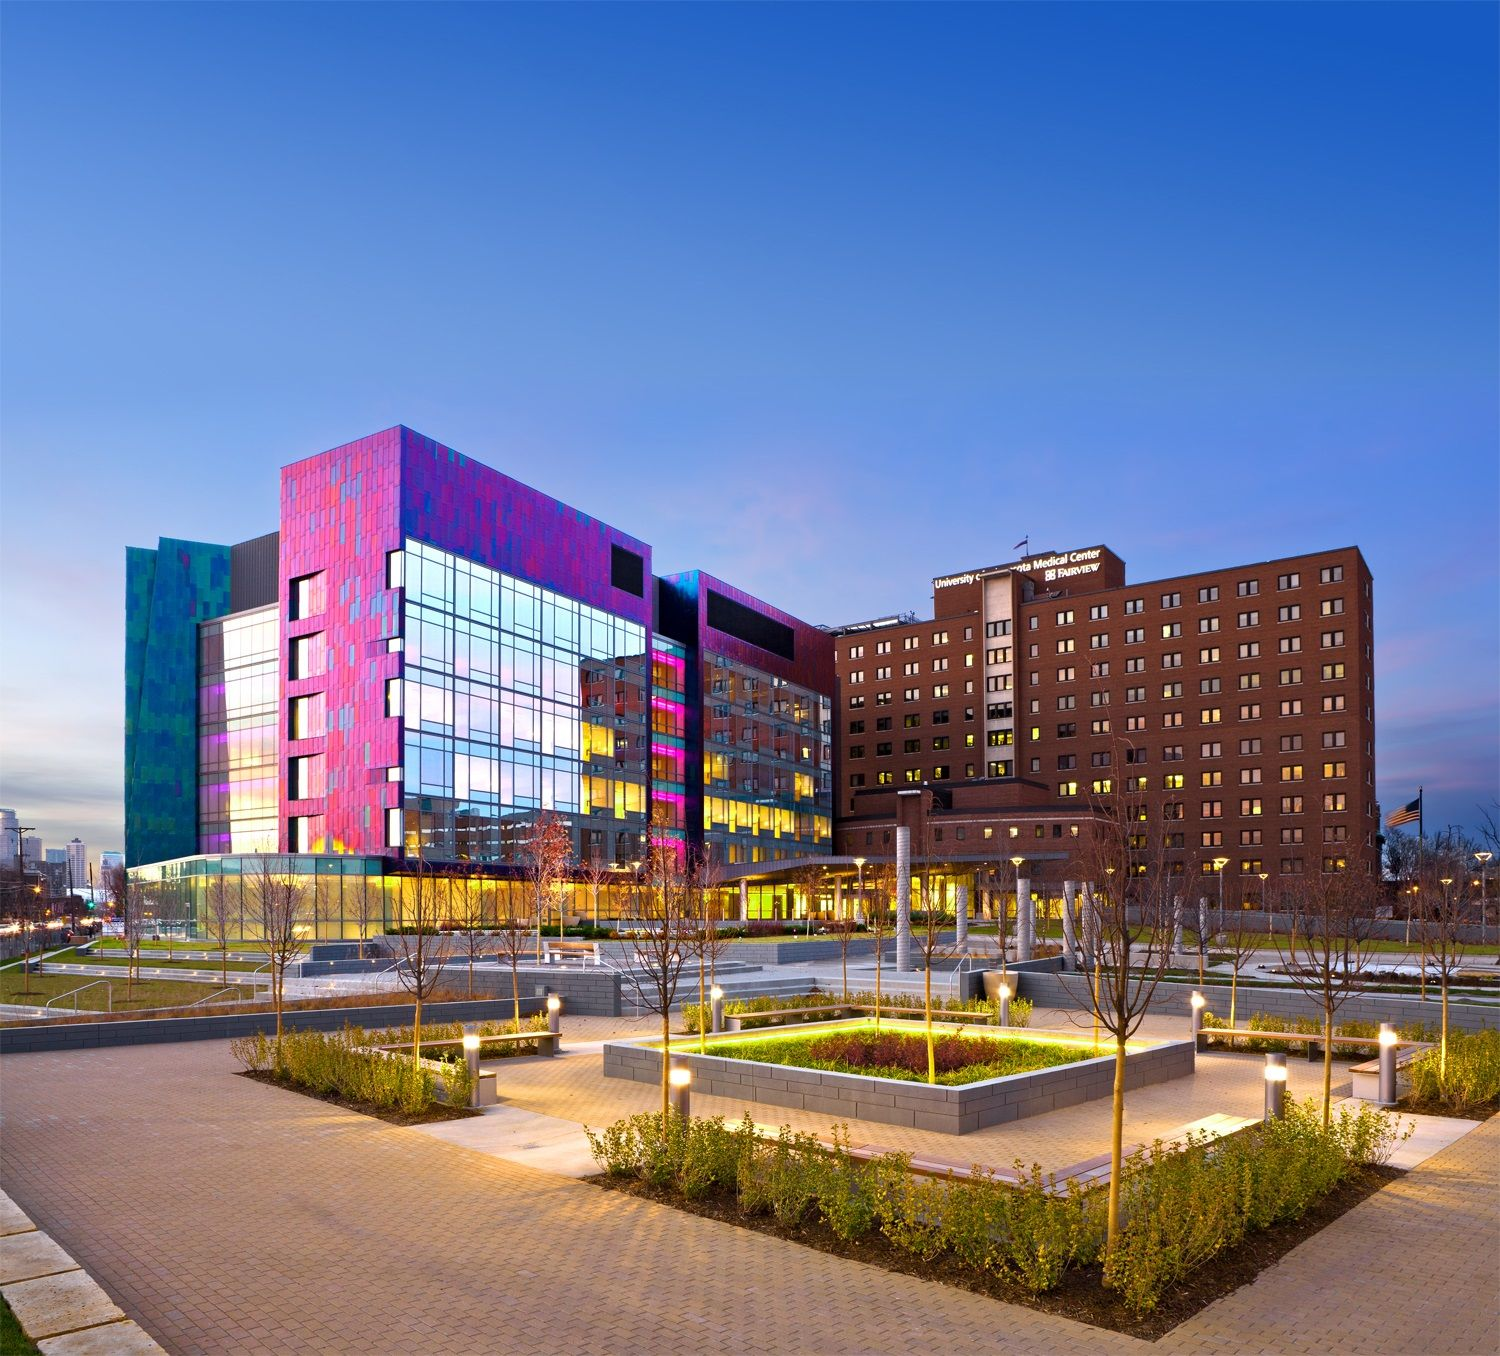 University Of Minnesota Amplatz Children's Hospital